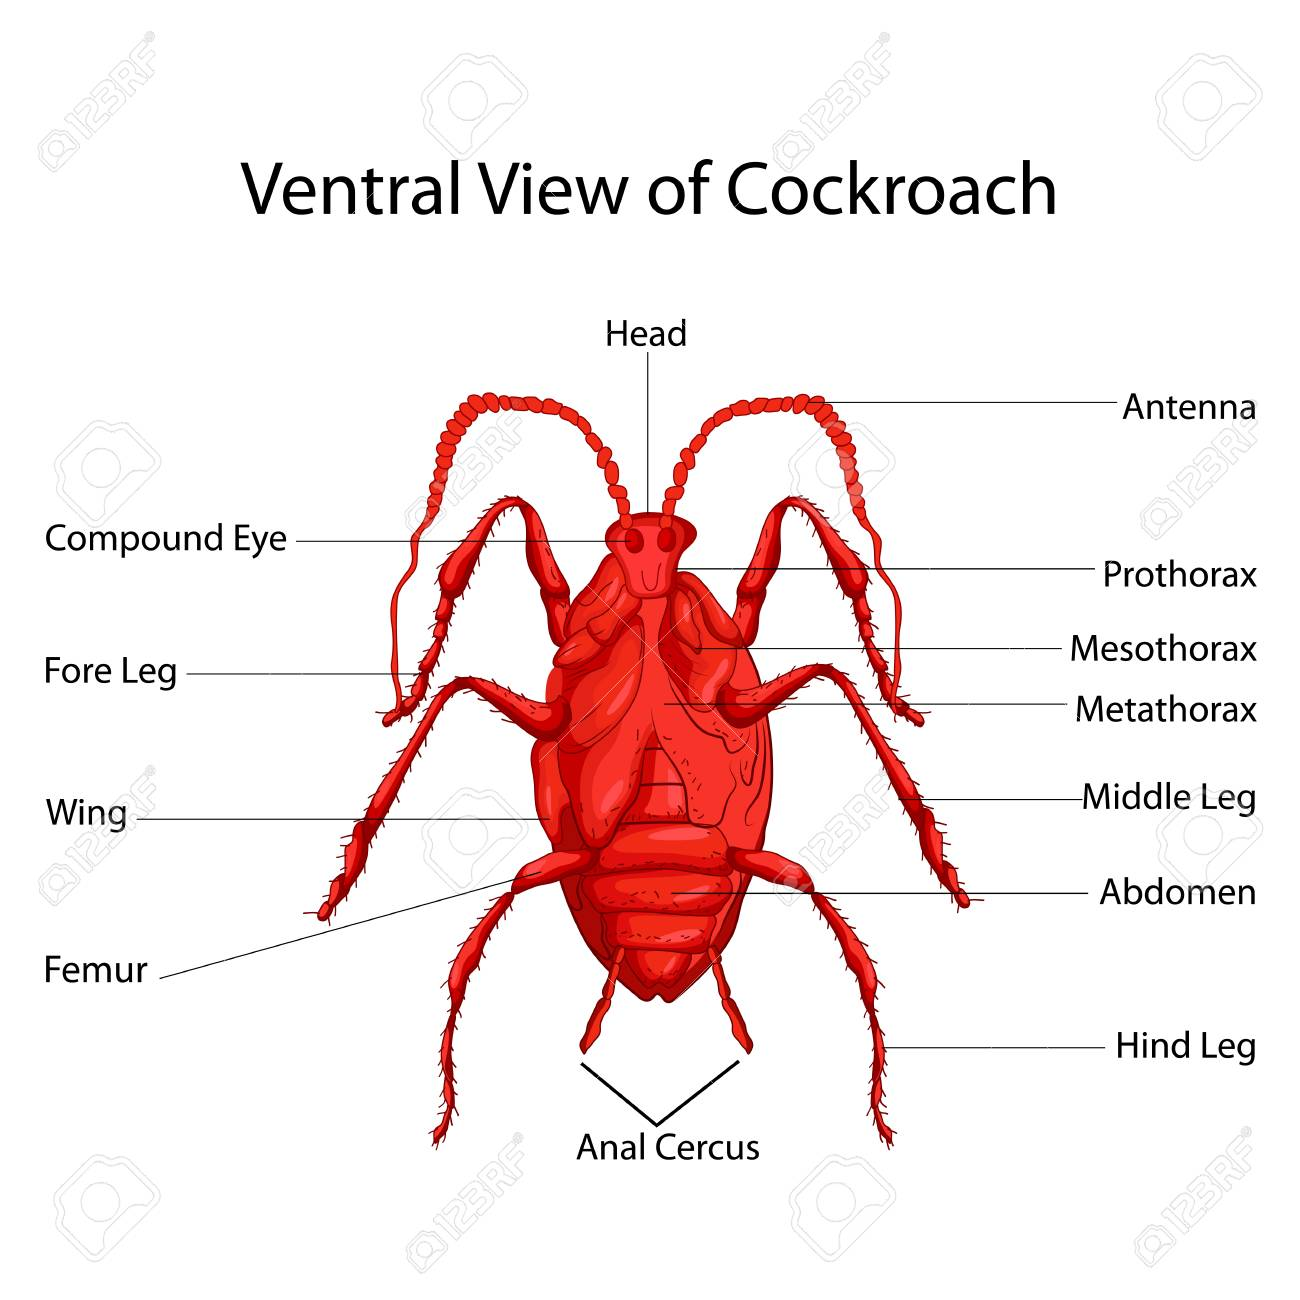 hight resolution of education chart of biology for ventral view of cockroach diagram vector illustration stock vector